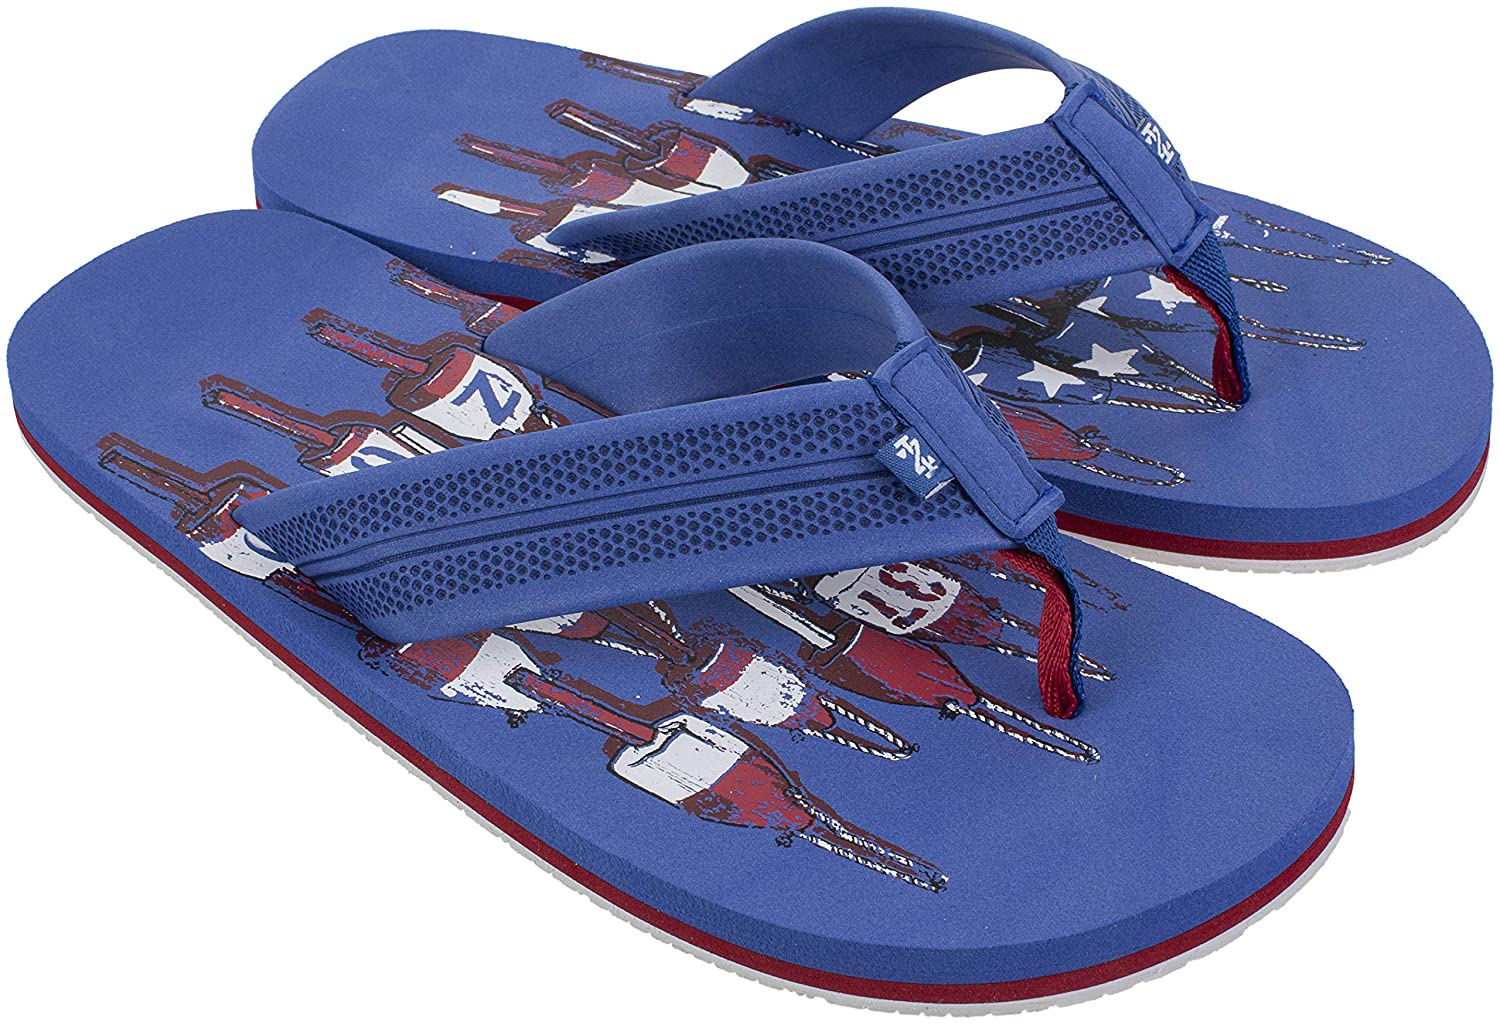 10cbed4a4c00 Amazon.com | IZOD Mens Flip Flop Sandals, Beach and Pool Sandals for ...